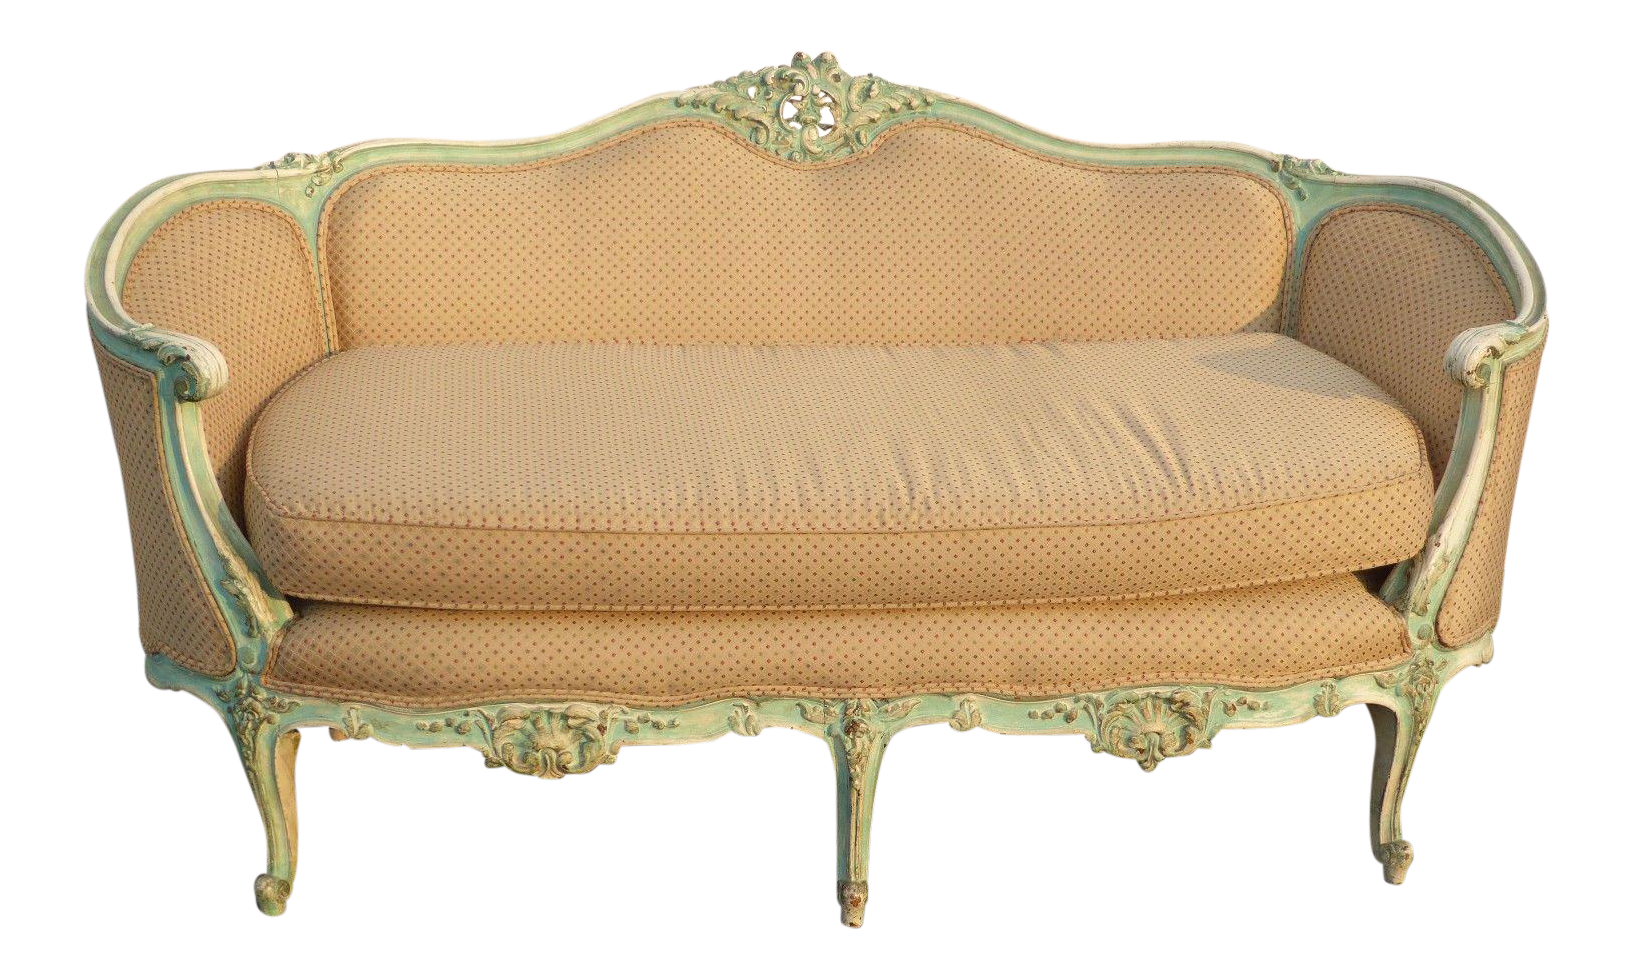 Incroyable Antique French Provincial Louis XV Rococo Style Ornately Carved Settee Sofa    Image 1 Of 11